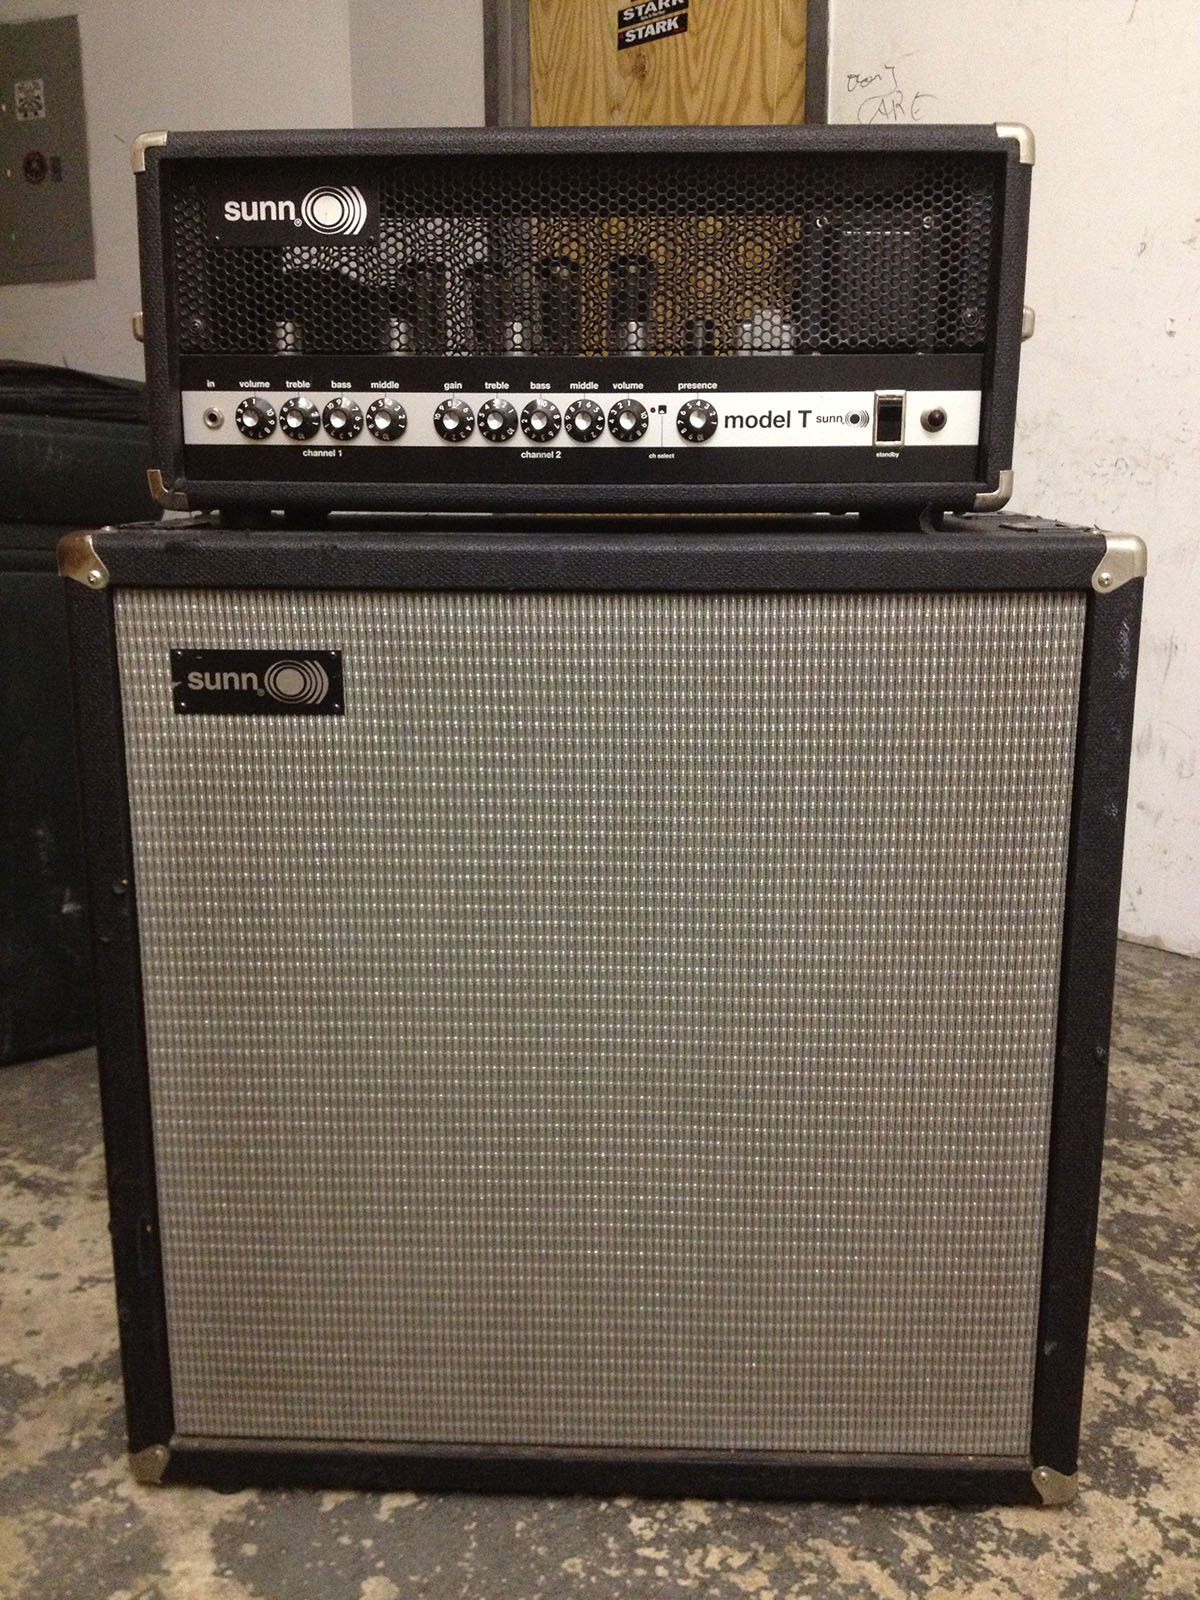 ATTENTION! I'm selling a SUNN O))) MODEL T amplifier (late 90s Fender reissue) + matching 4x12